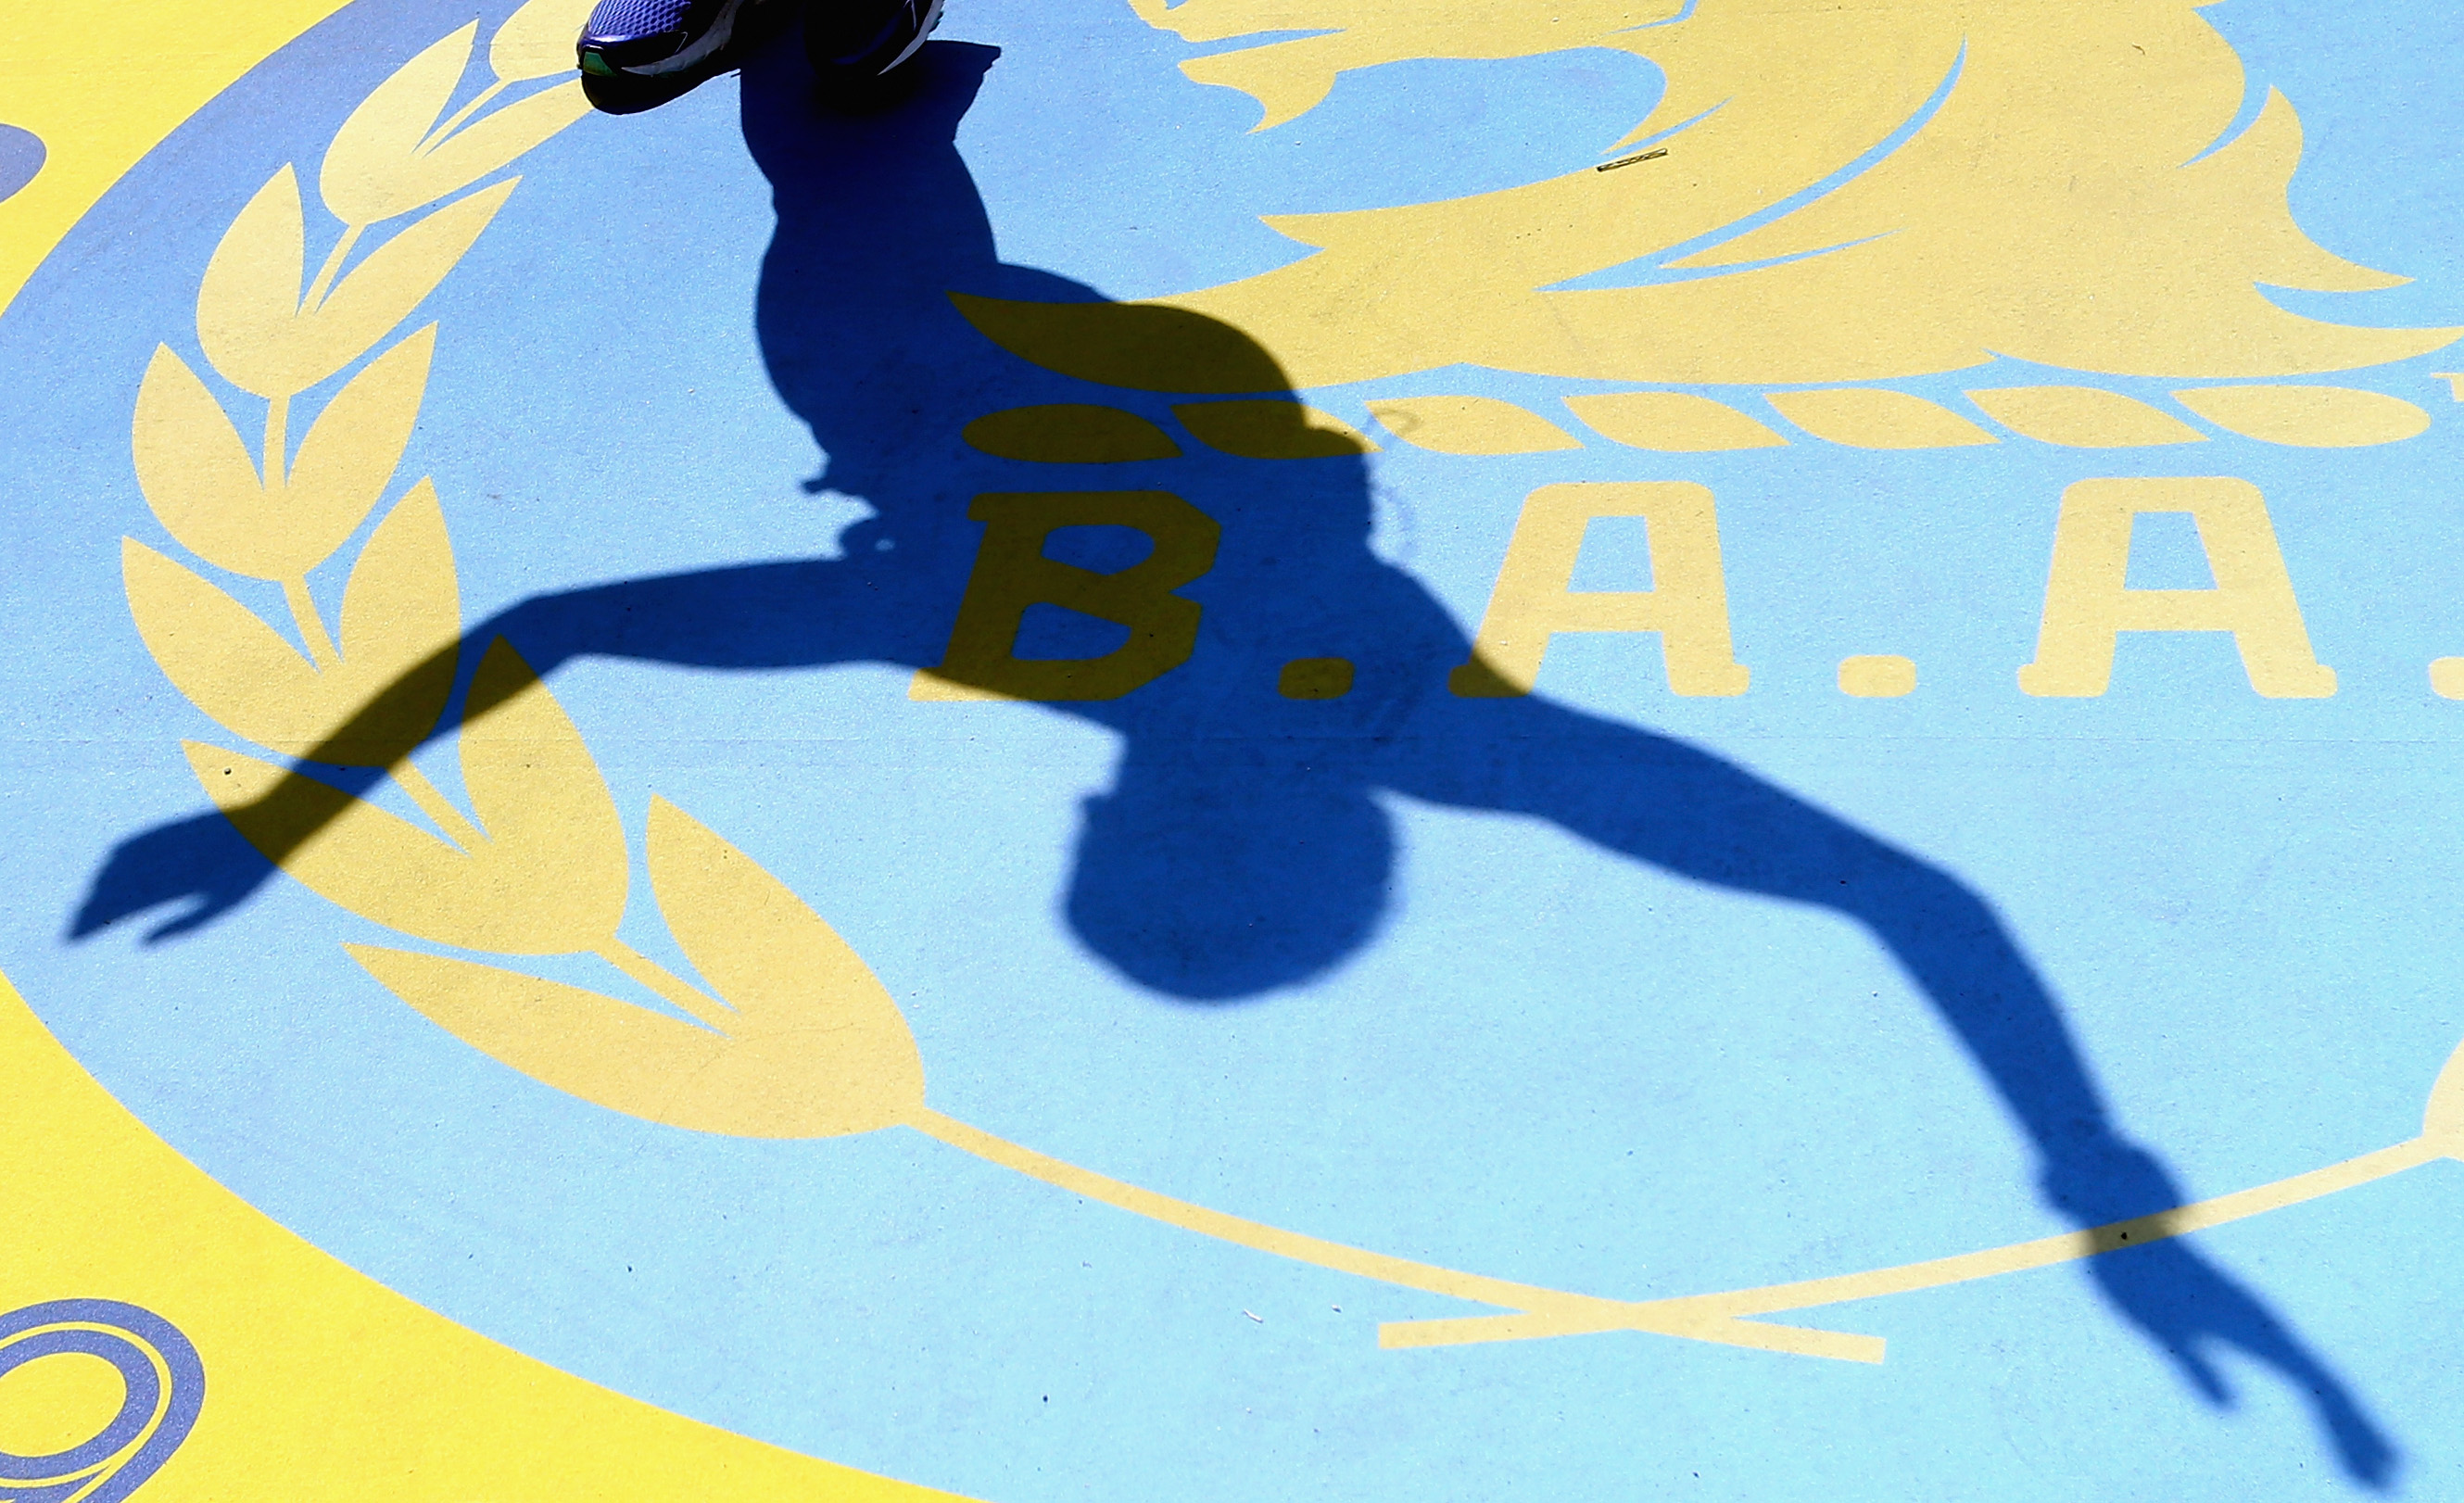 A runner's shadow is seen crossing the finish line during the 120th Boston Marathon.